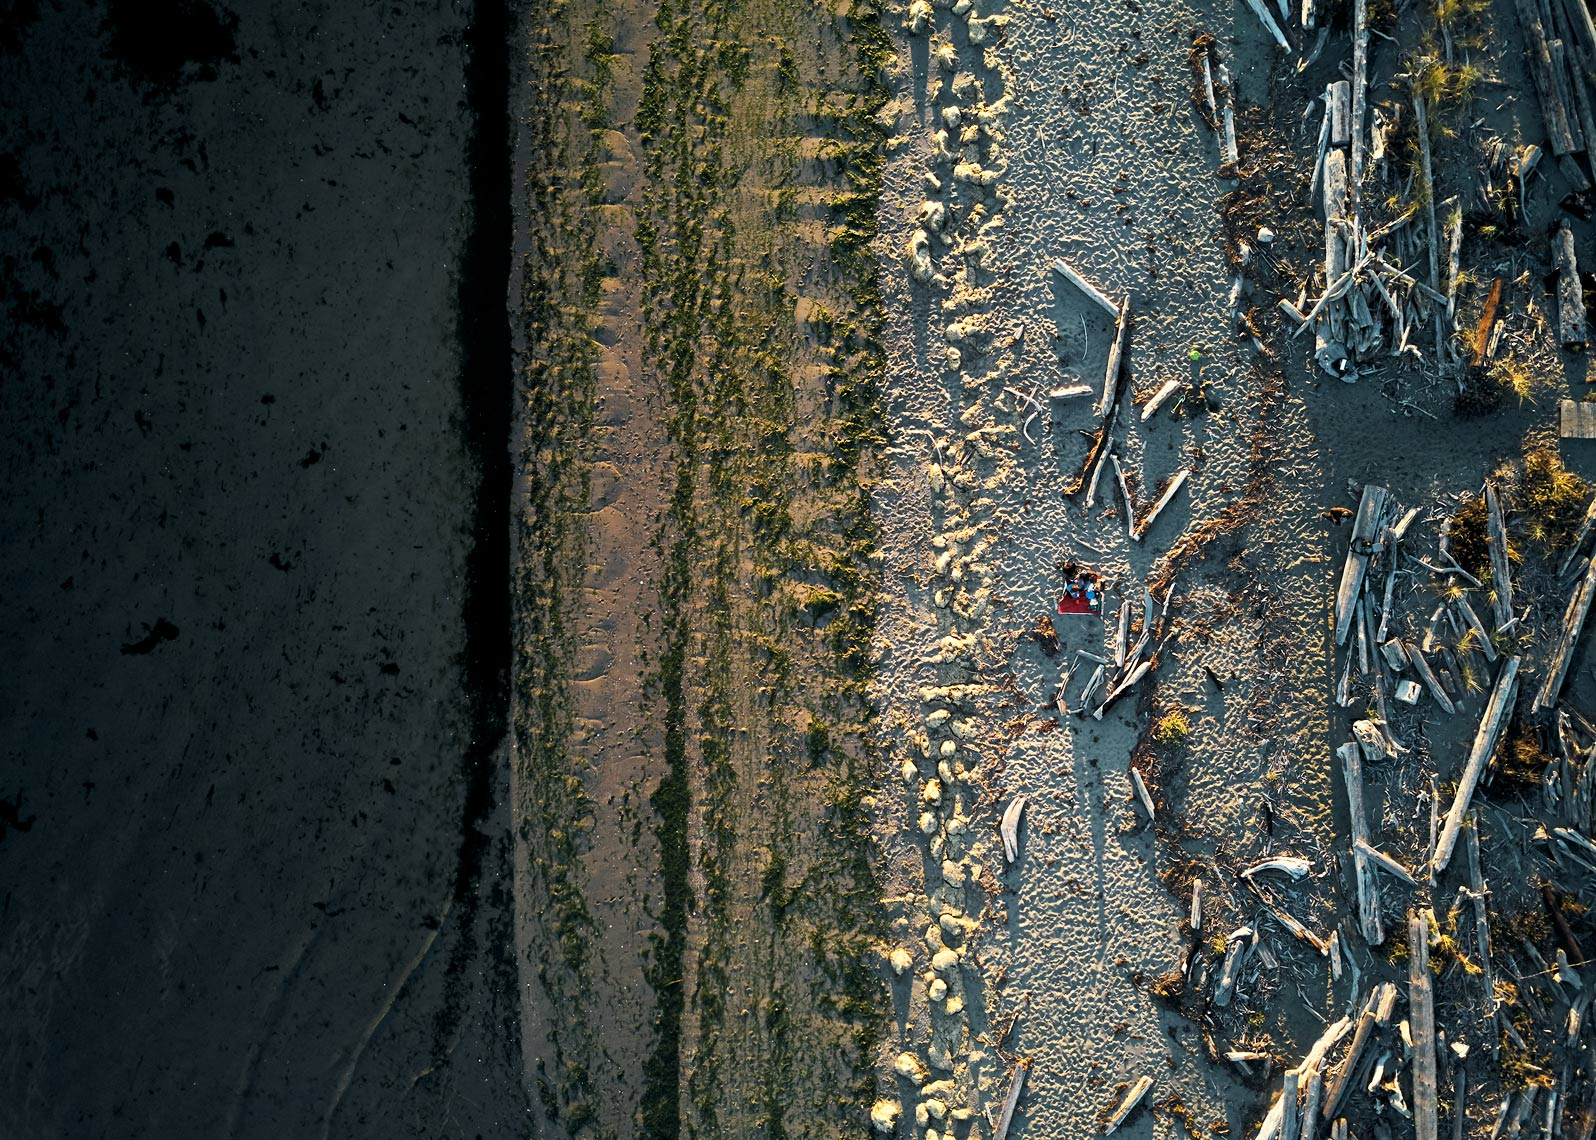 Drone photographer Amos Morgan captures beach landscape